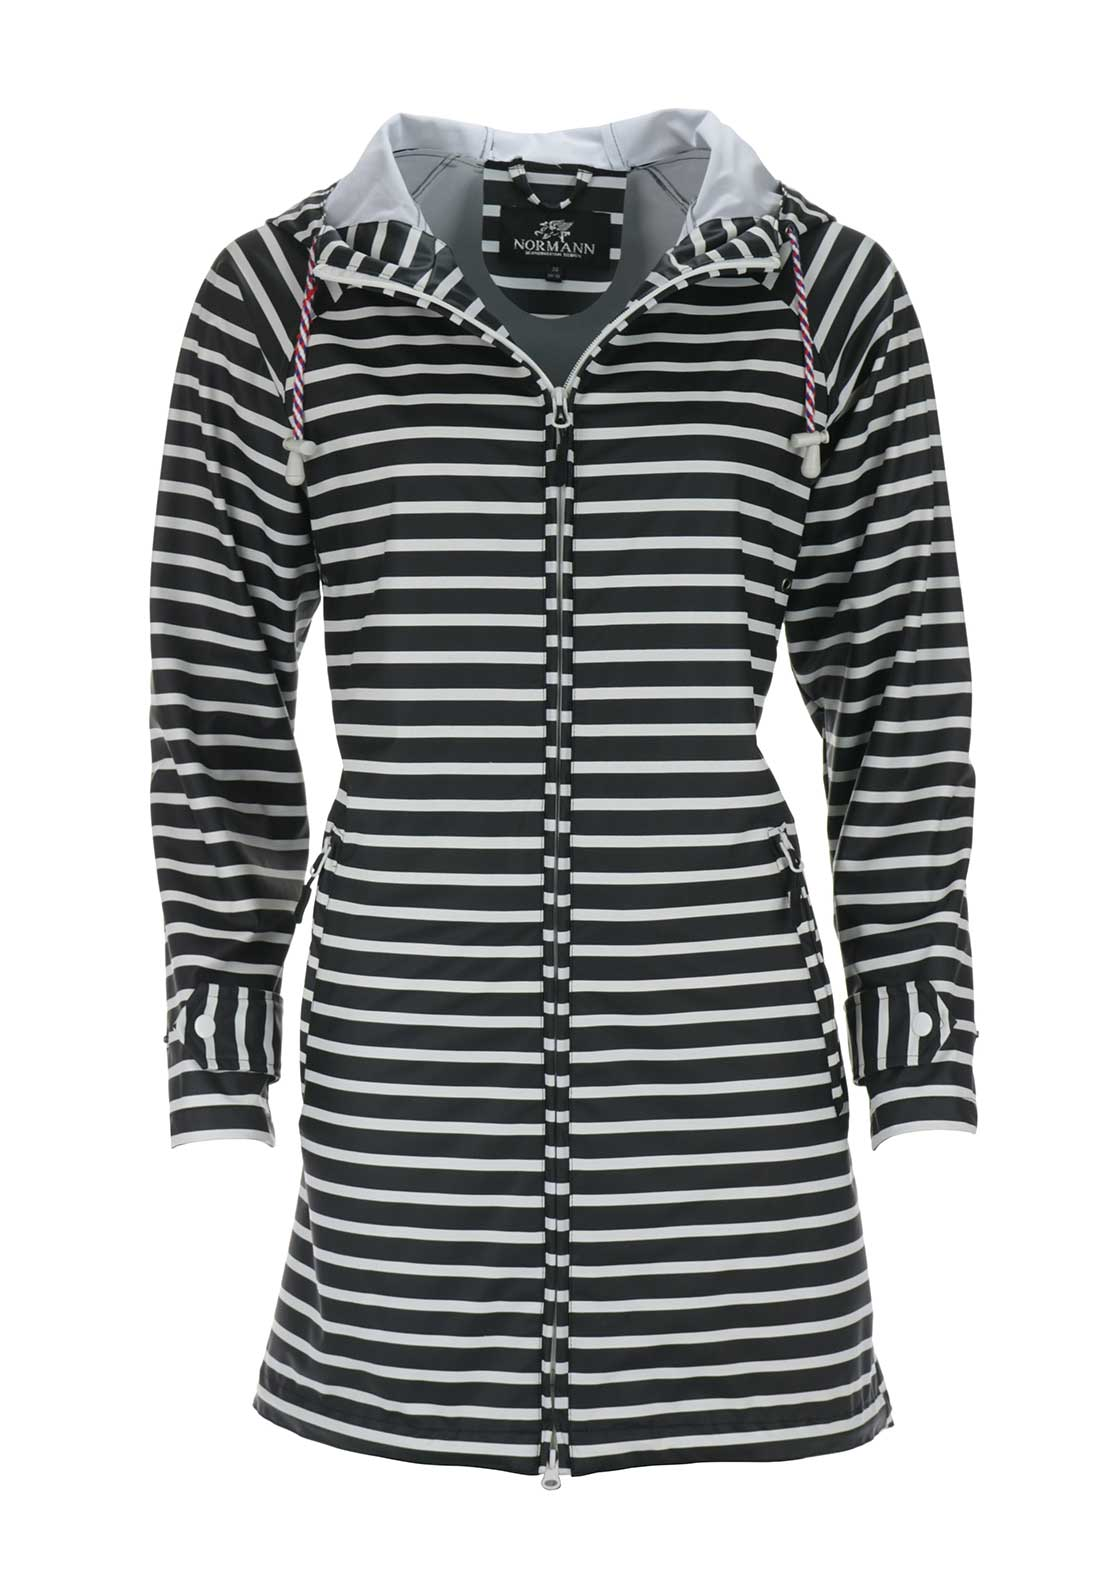 Normann Striped Waterproof Raincoat, Black and White